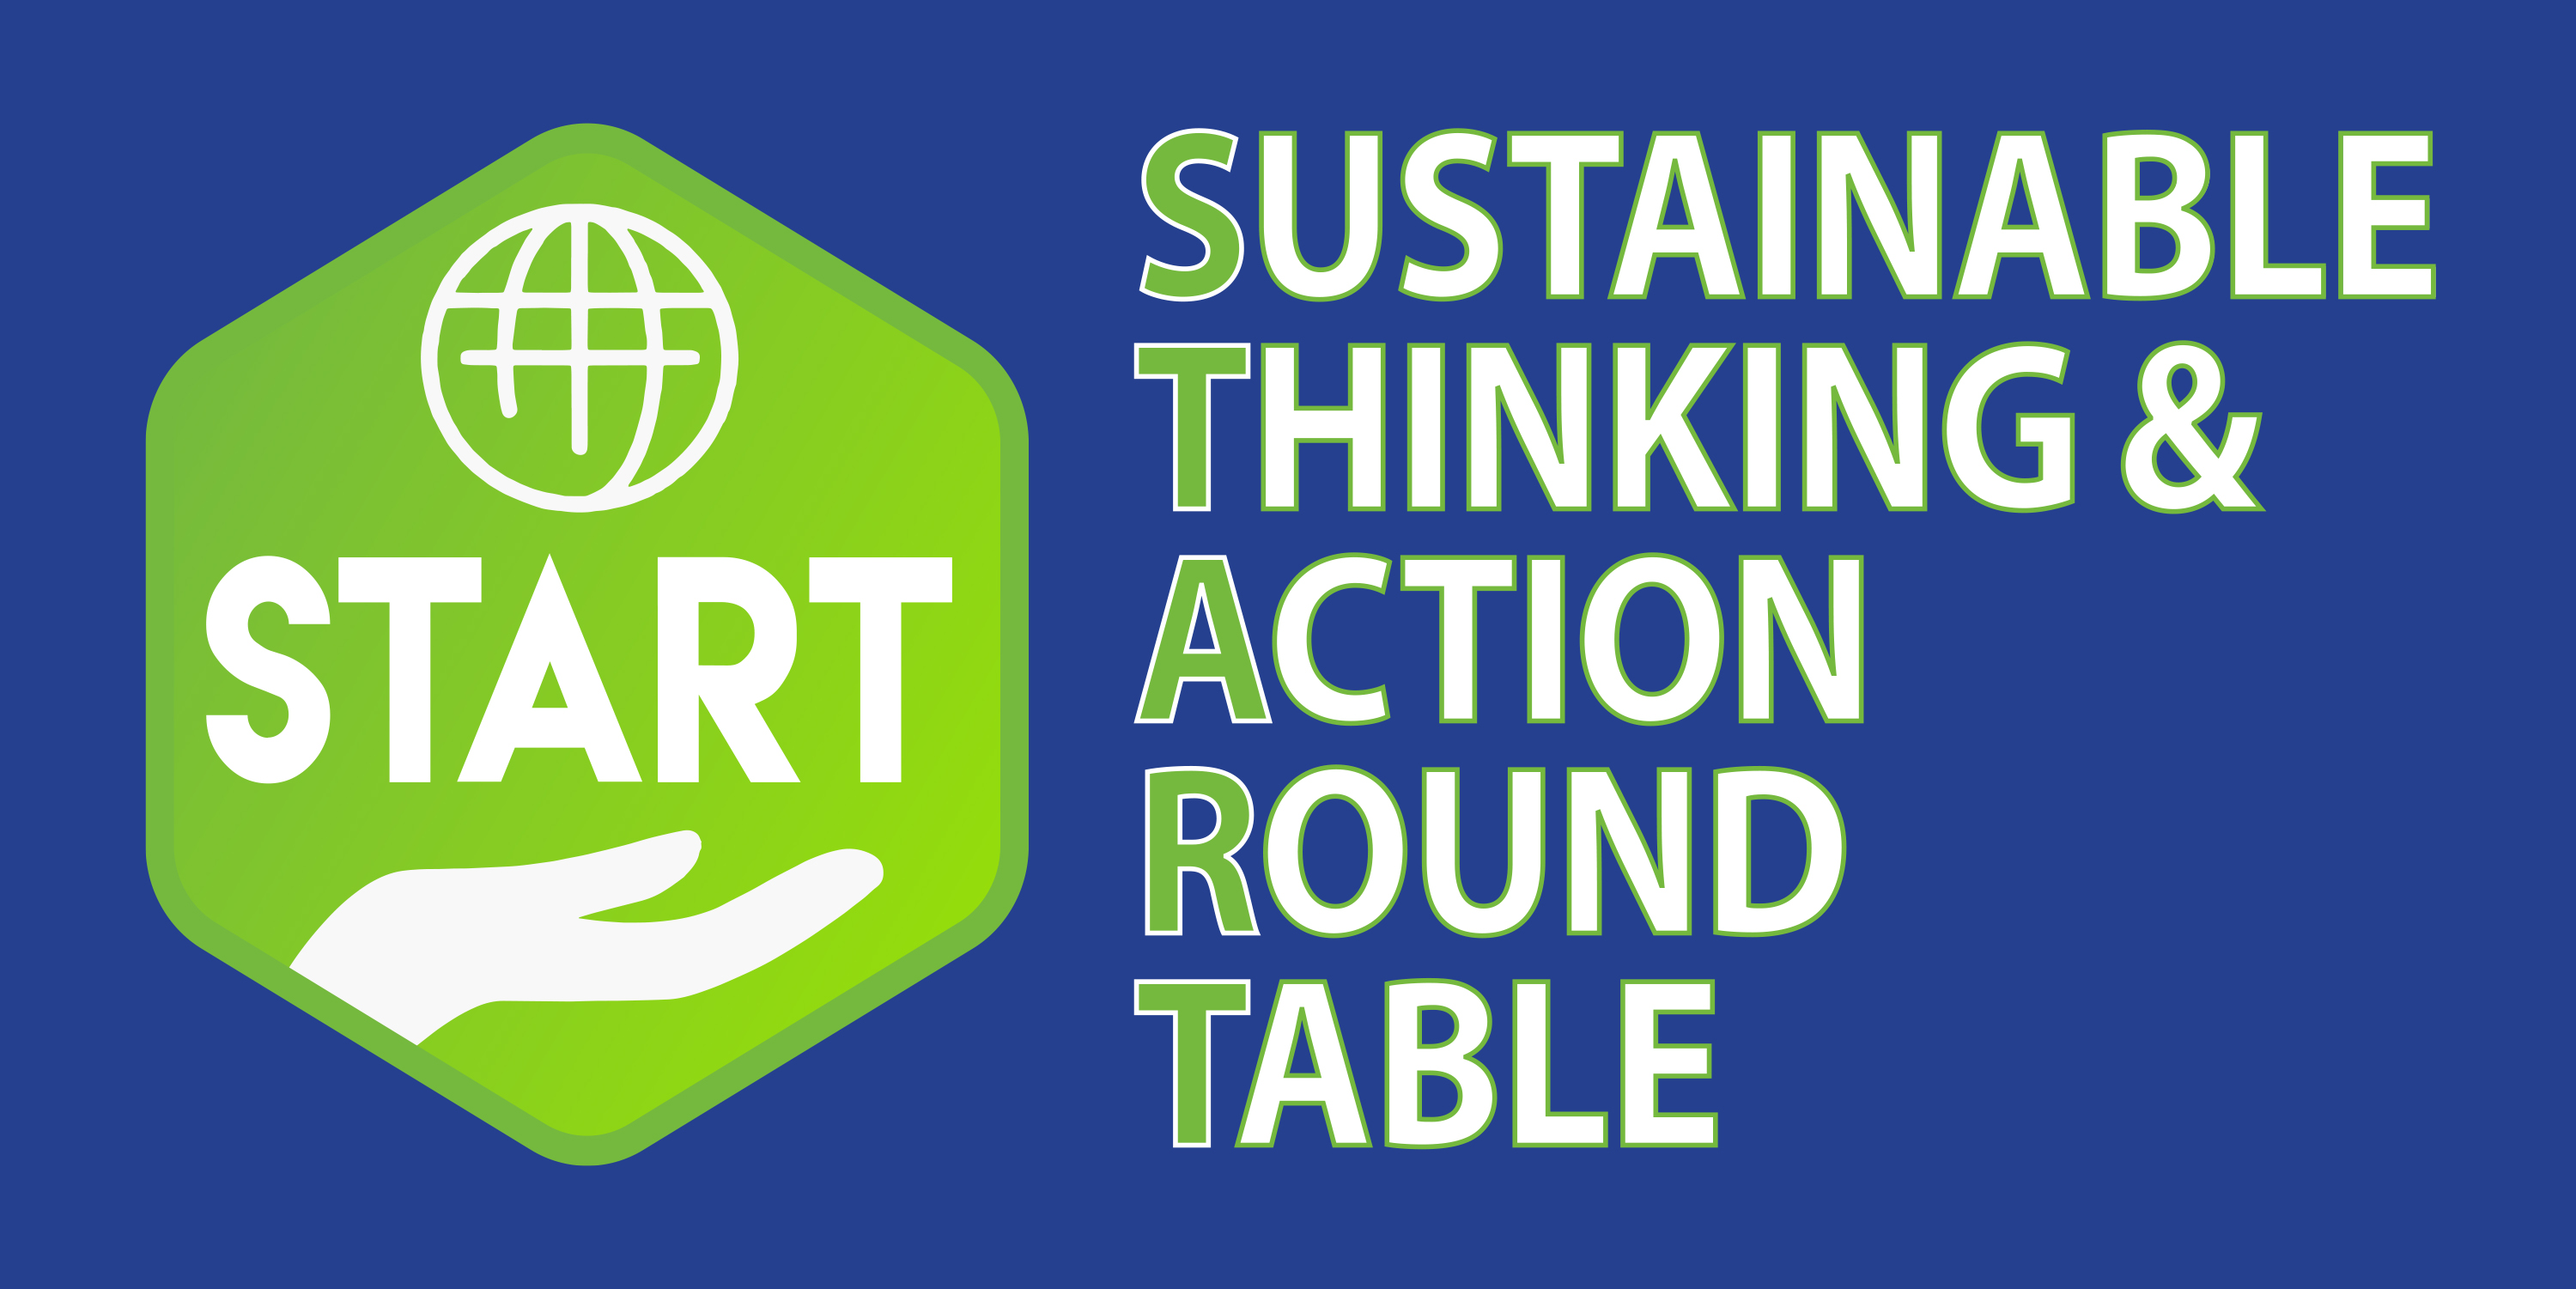 Sustainable Thinking & Action Round Table log with hand and globe